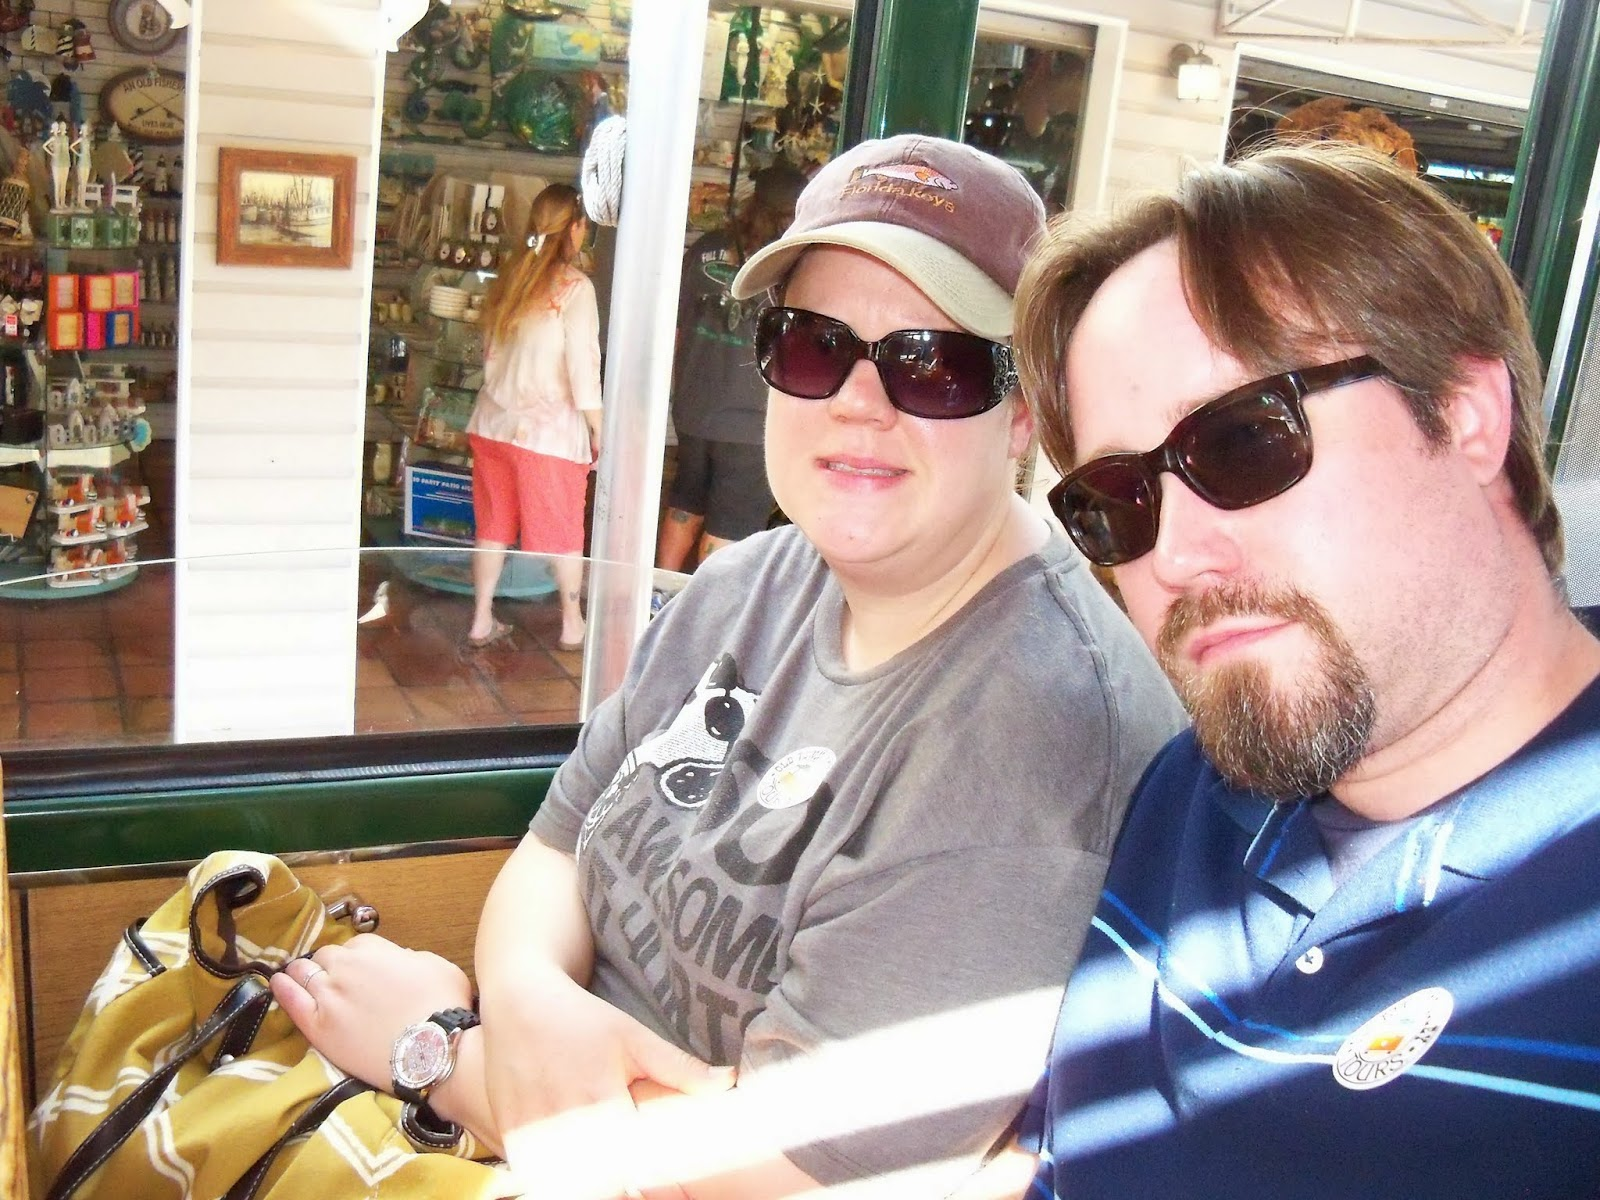 Key West Vacation - 116_5677.JPG